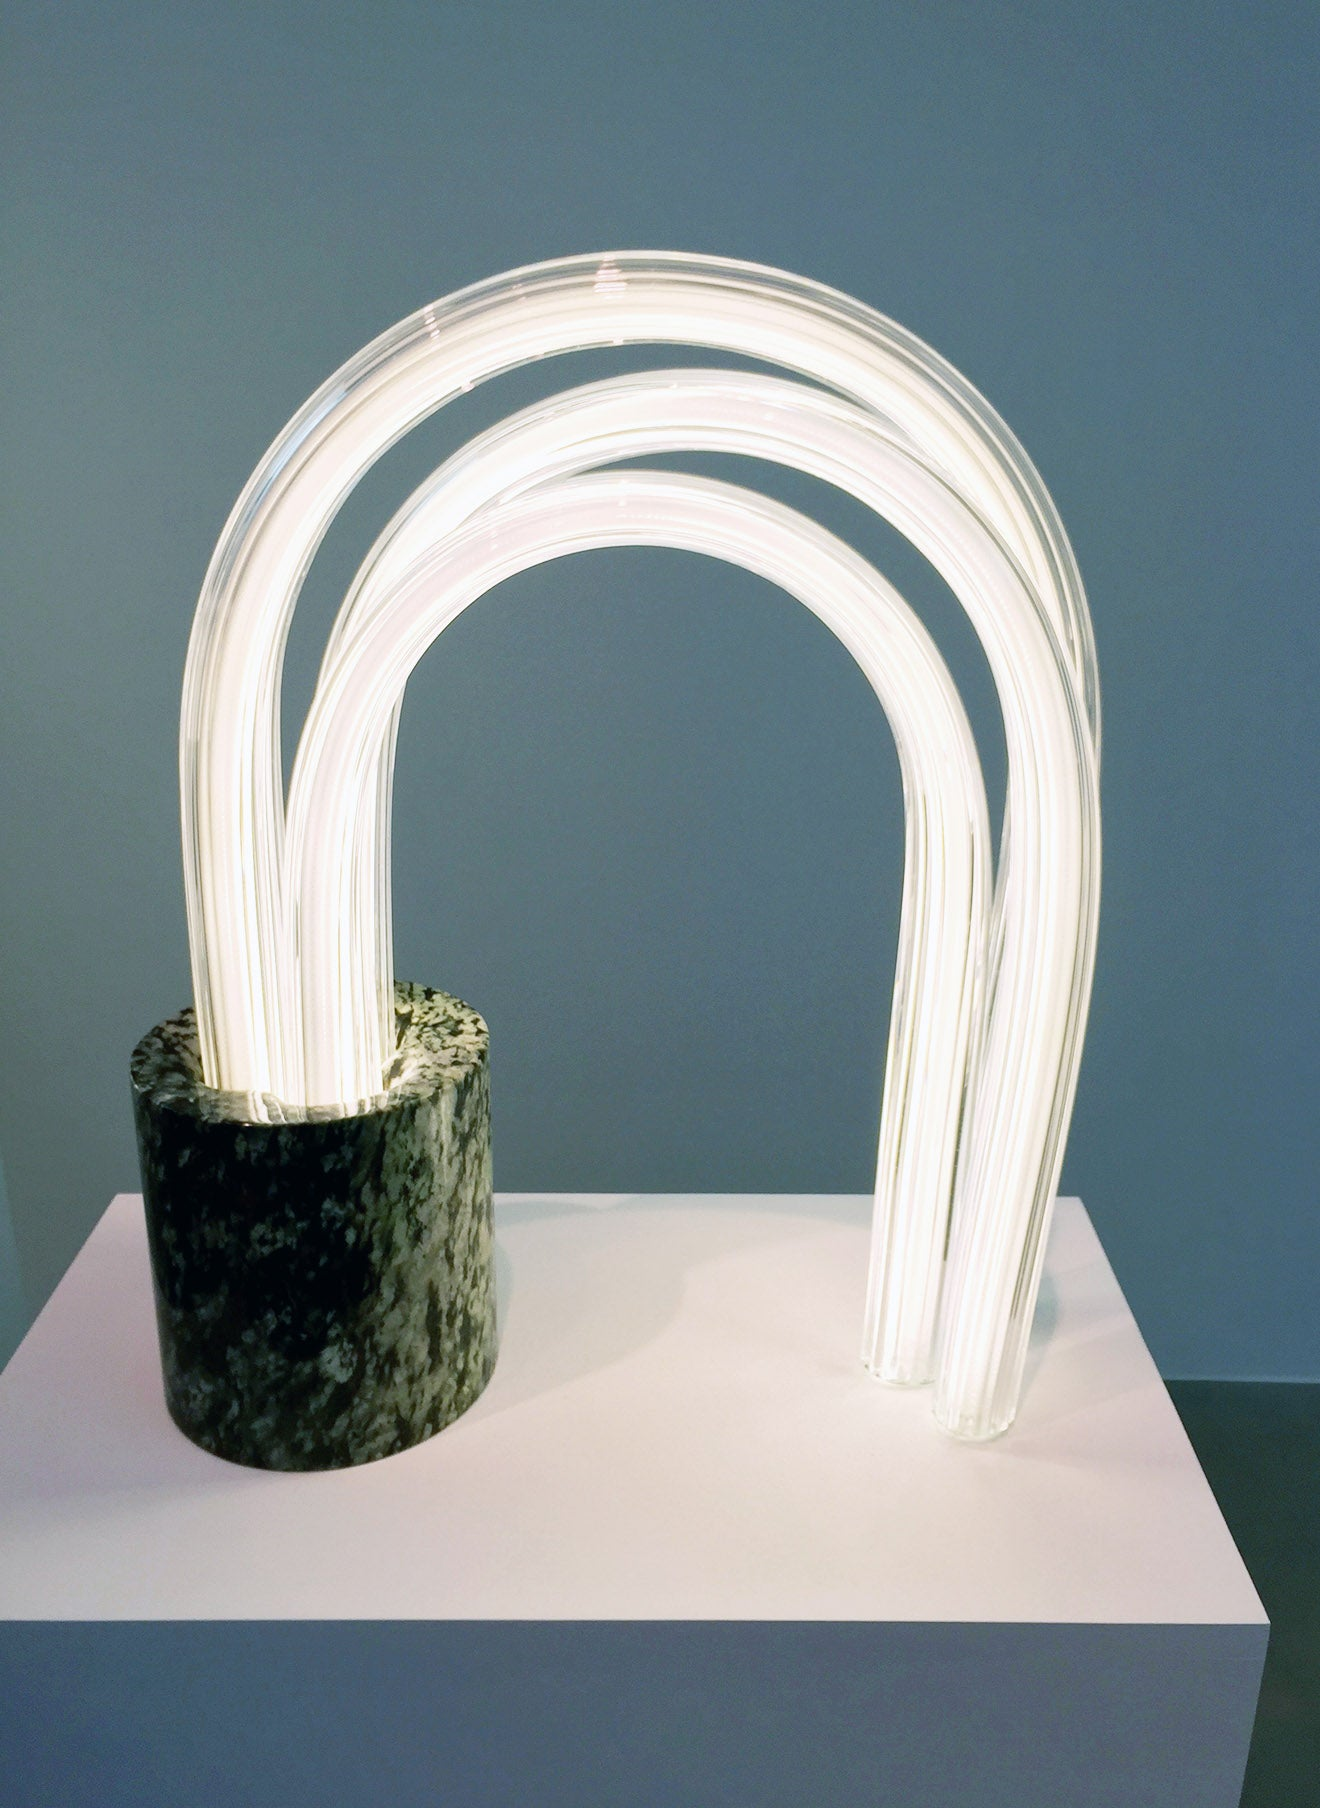 Spring Lamp designed by Mathieu Lehanneur